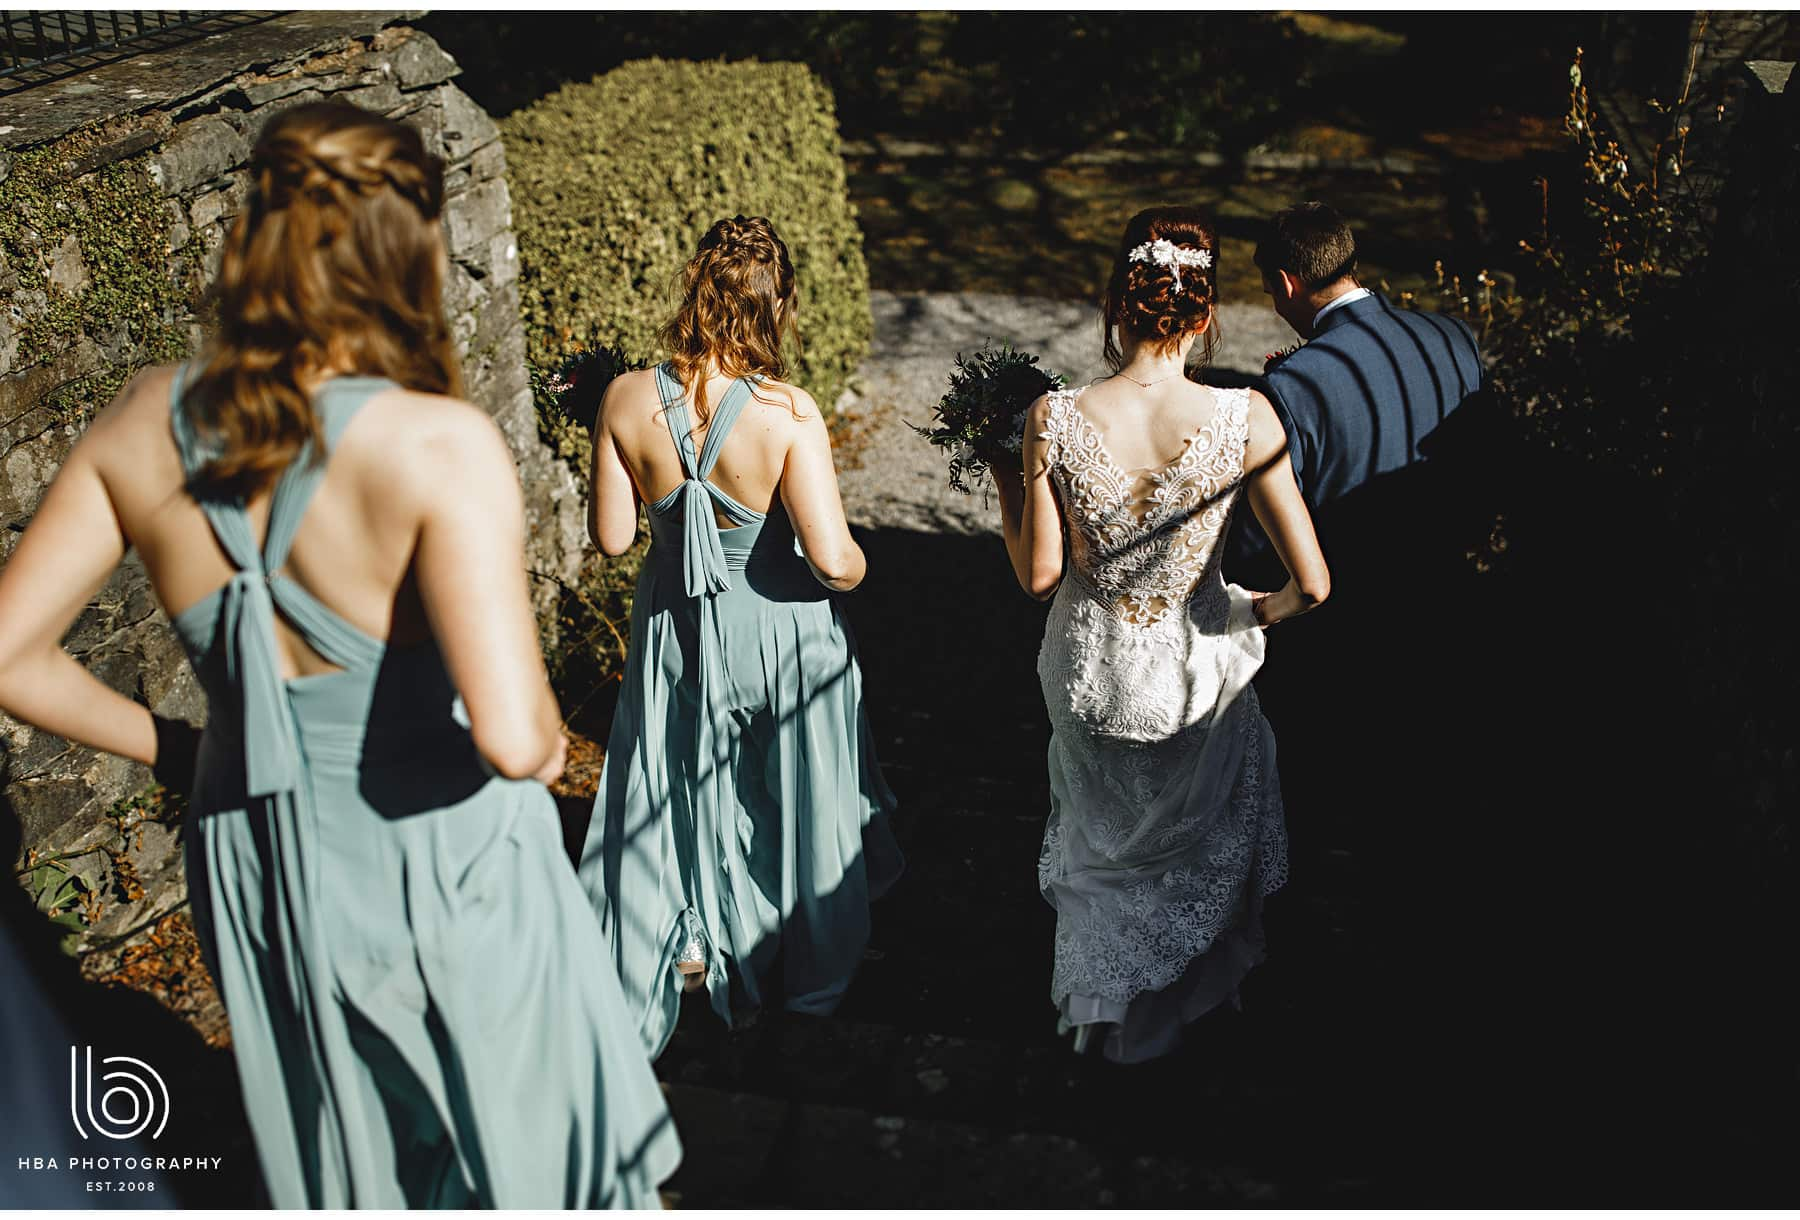 the bridal party walking through the estate